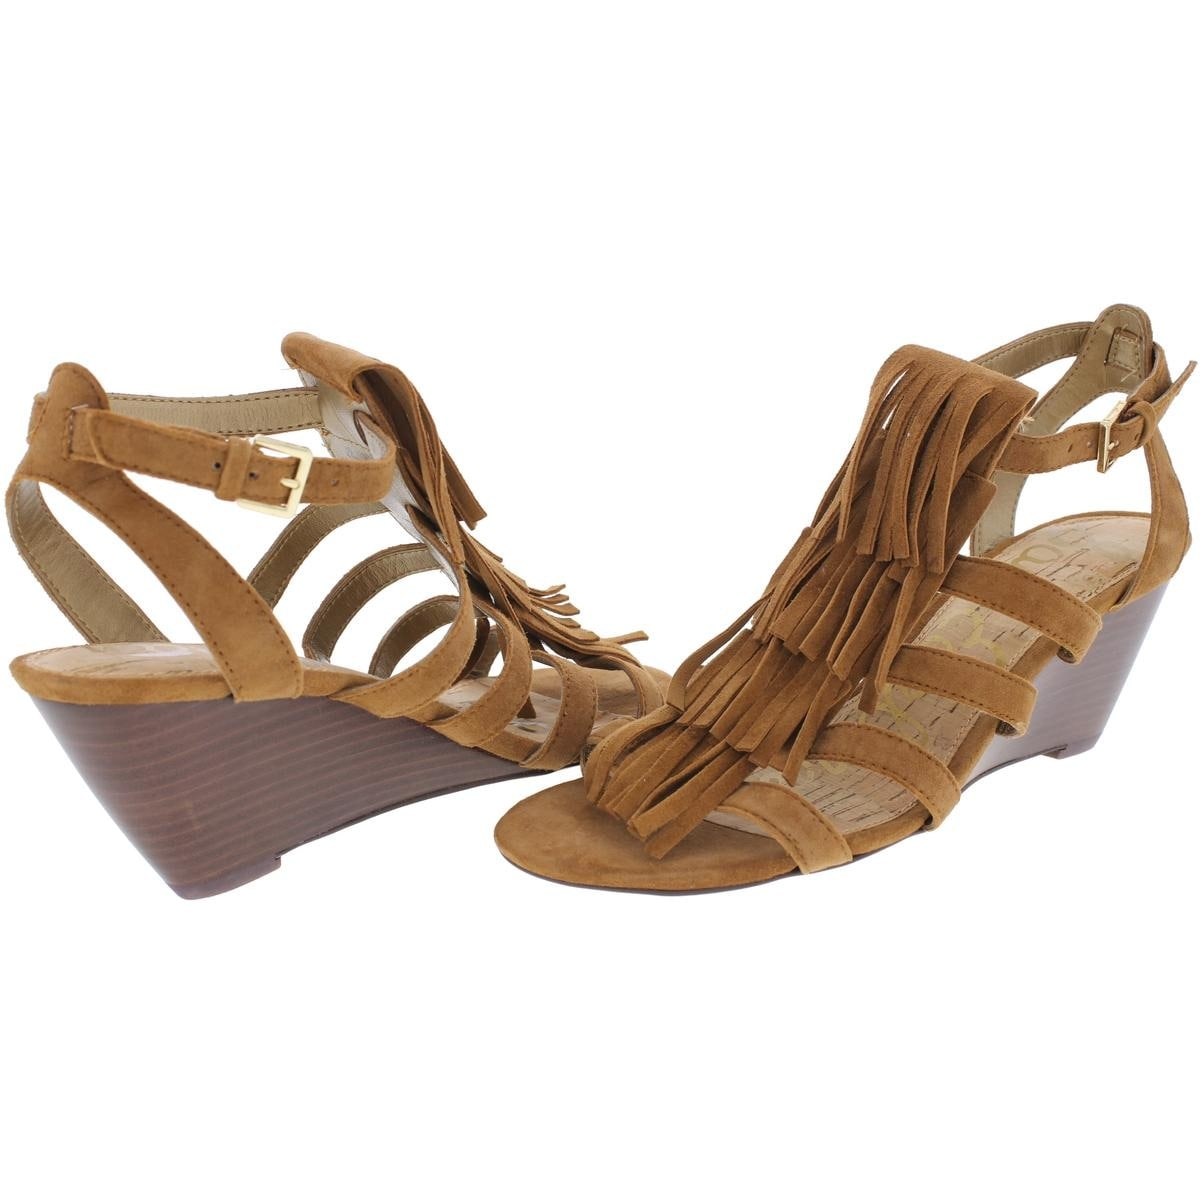 c72050fda Shop Sam Edelman Womens Sandra Wedge Sandals Suede Fringe - Free Shipping  On Orders Over  45 - Overstock - 21617347